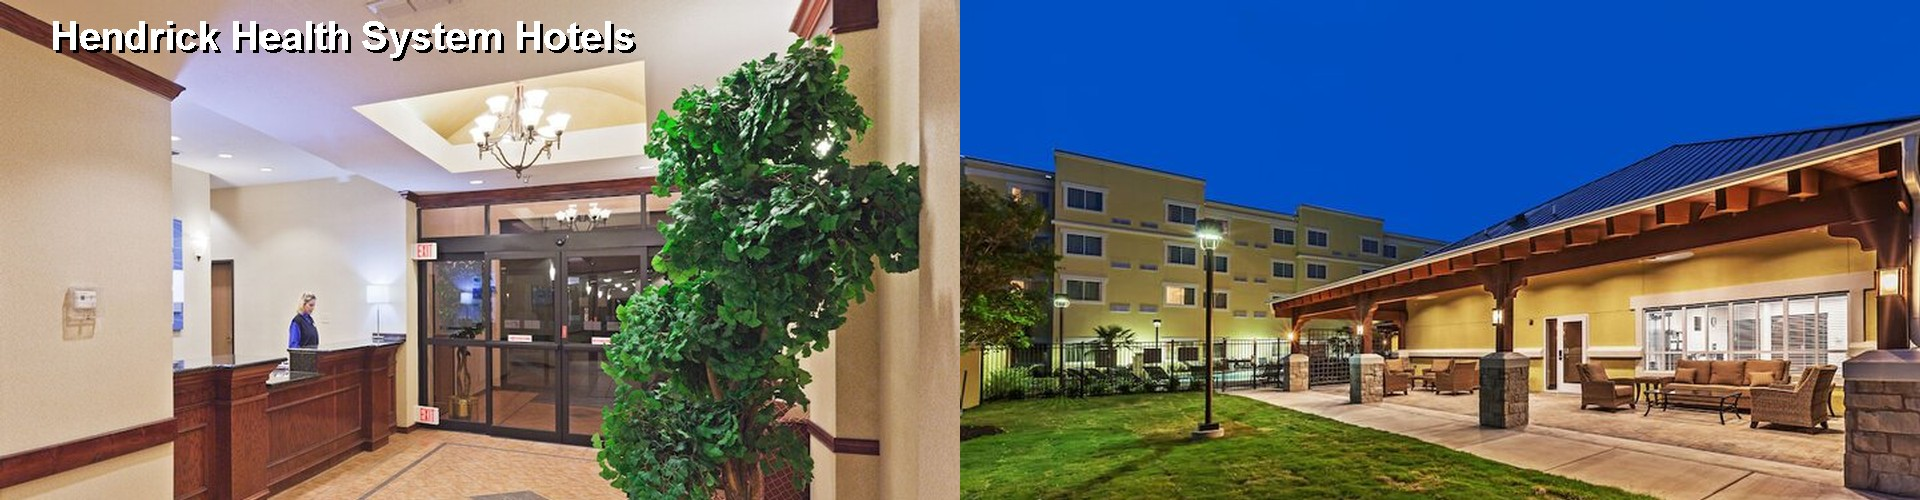 5 Best Hotels near Hendrick Health System